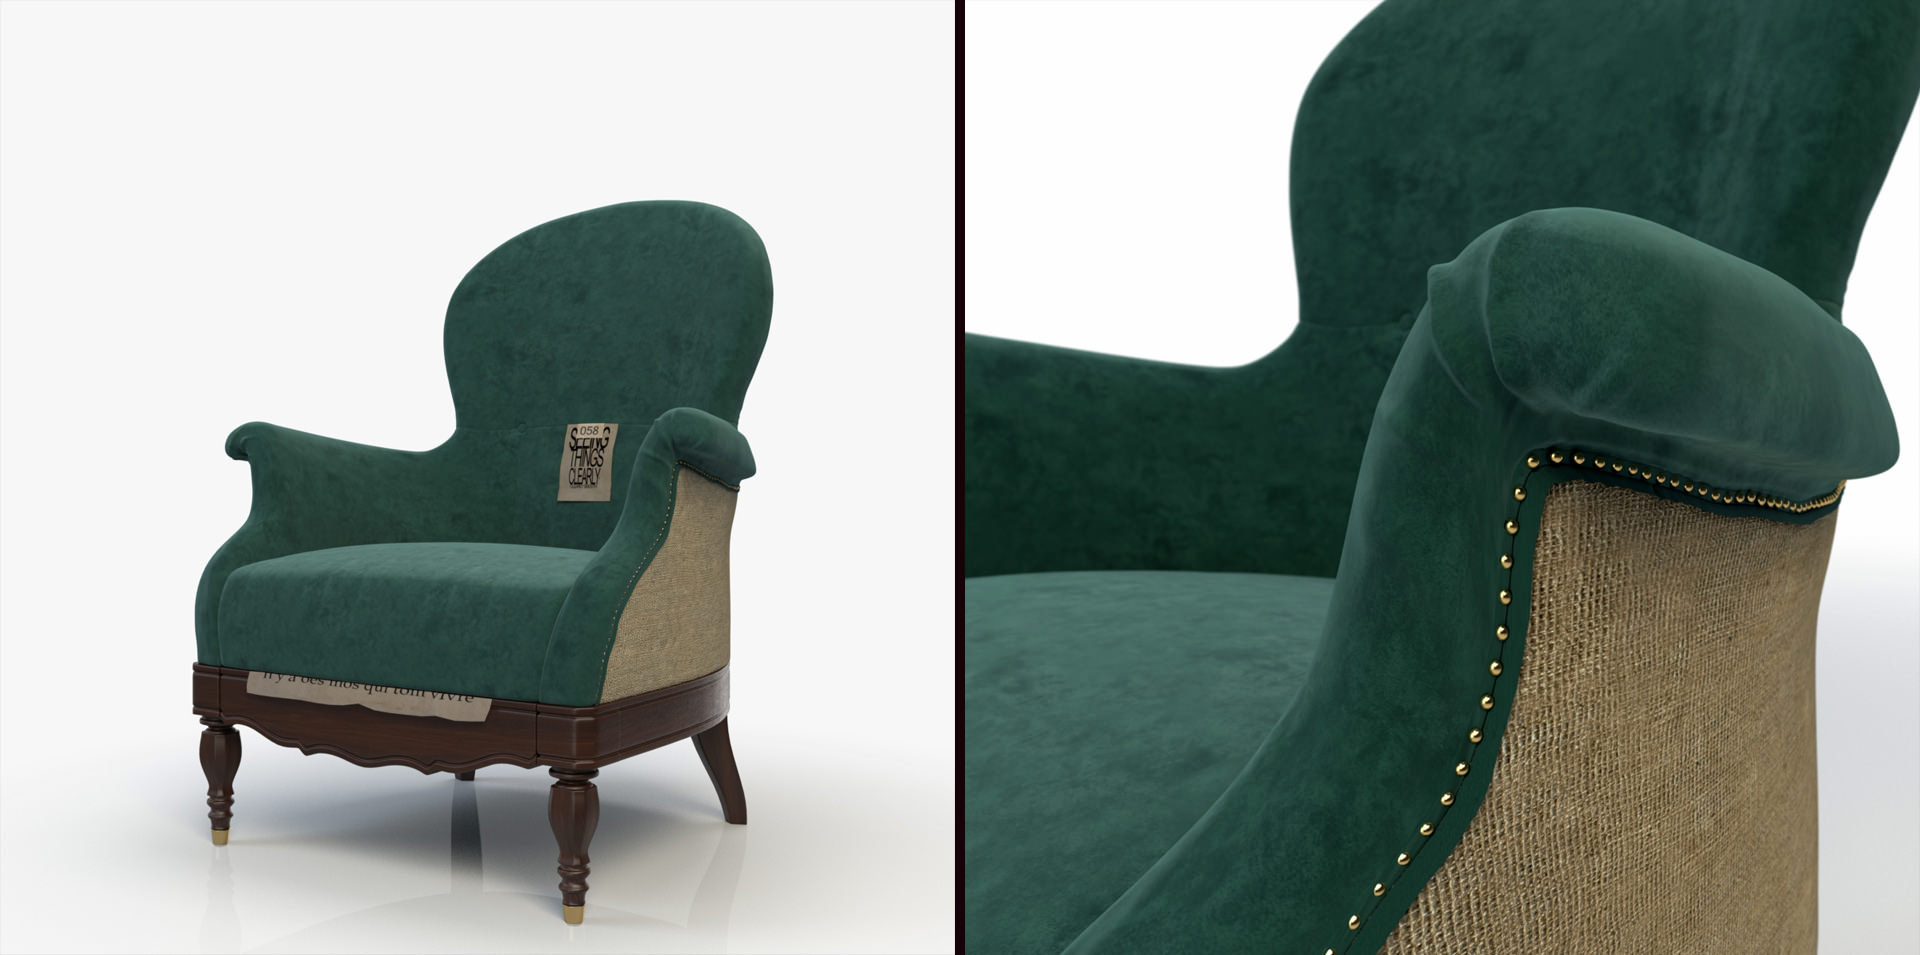 Custom 3D Model : Ona Armchair by Baxter